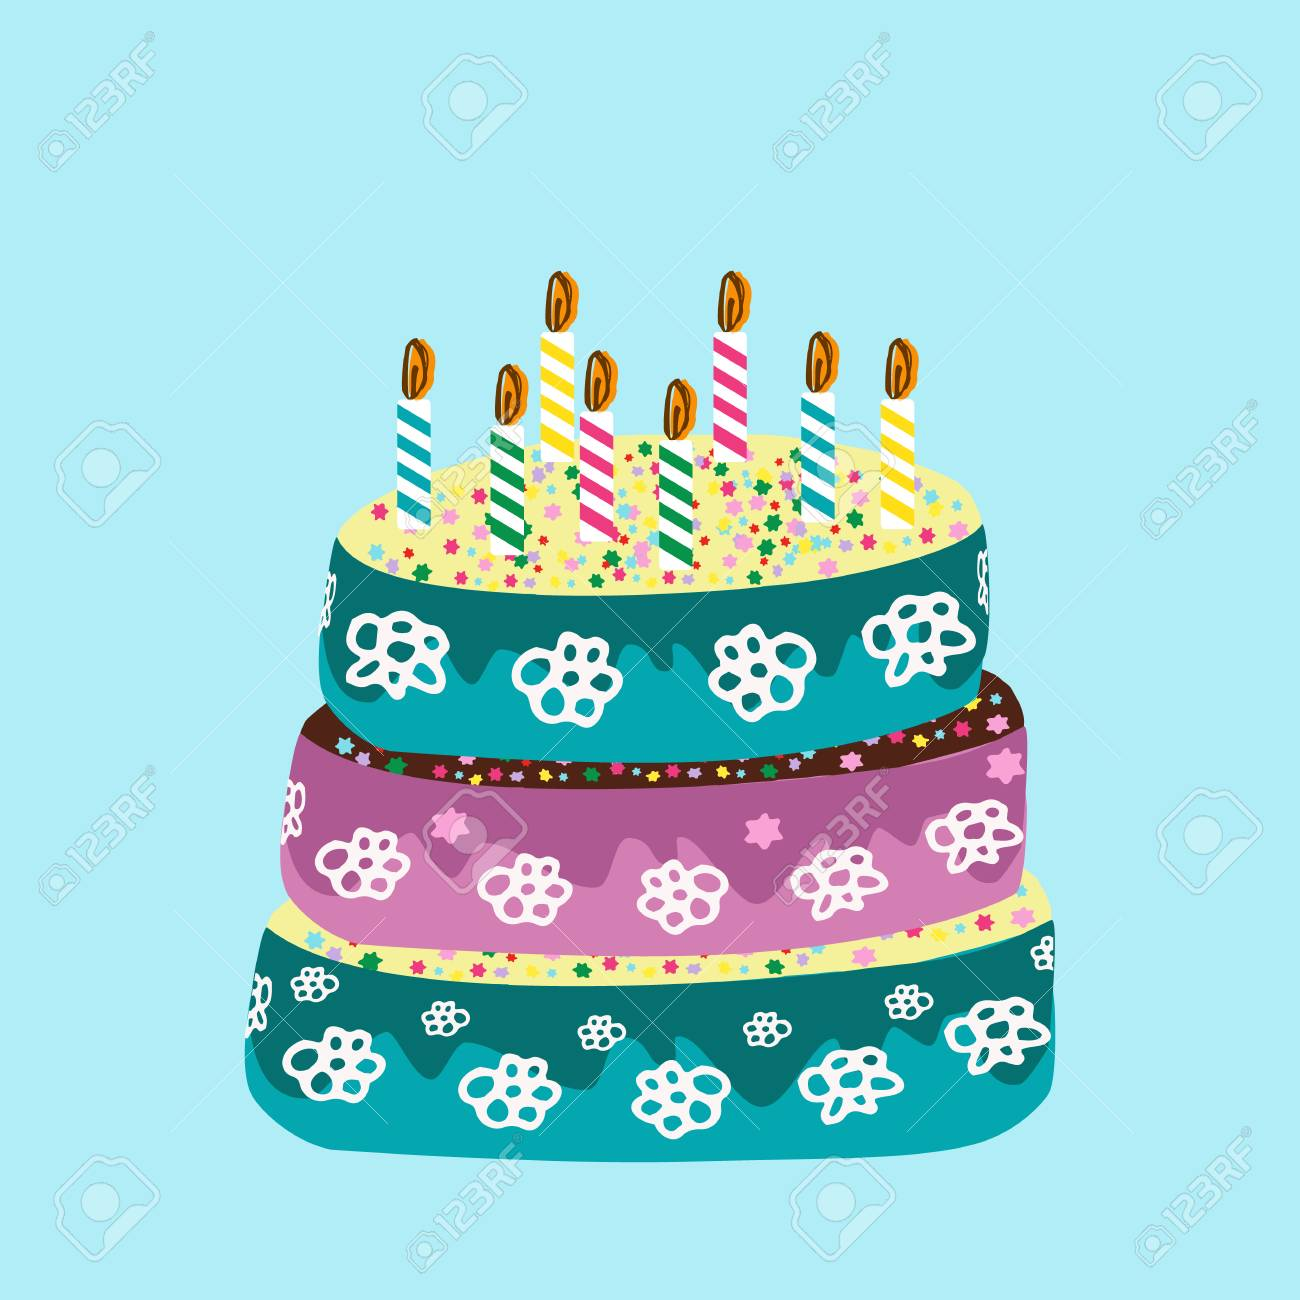 Astonishing Beautiful Birthday Cake With Birthday Candles Doodle Hand Funny Birthday Cards Online Alyptdamsfinfo